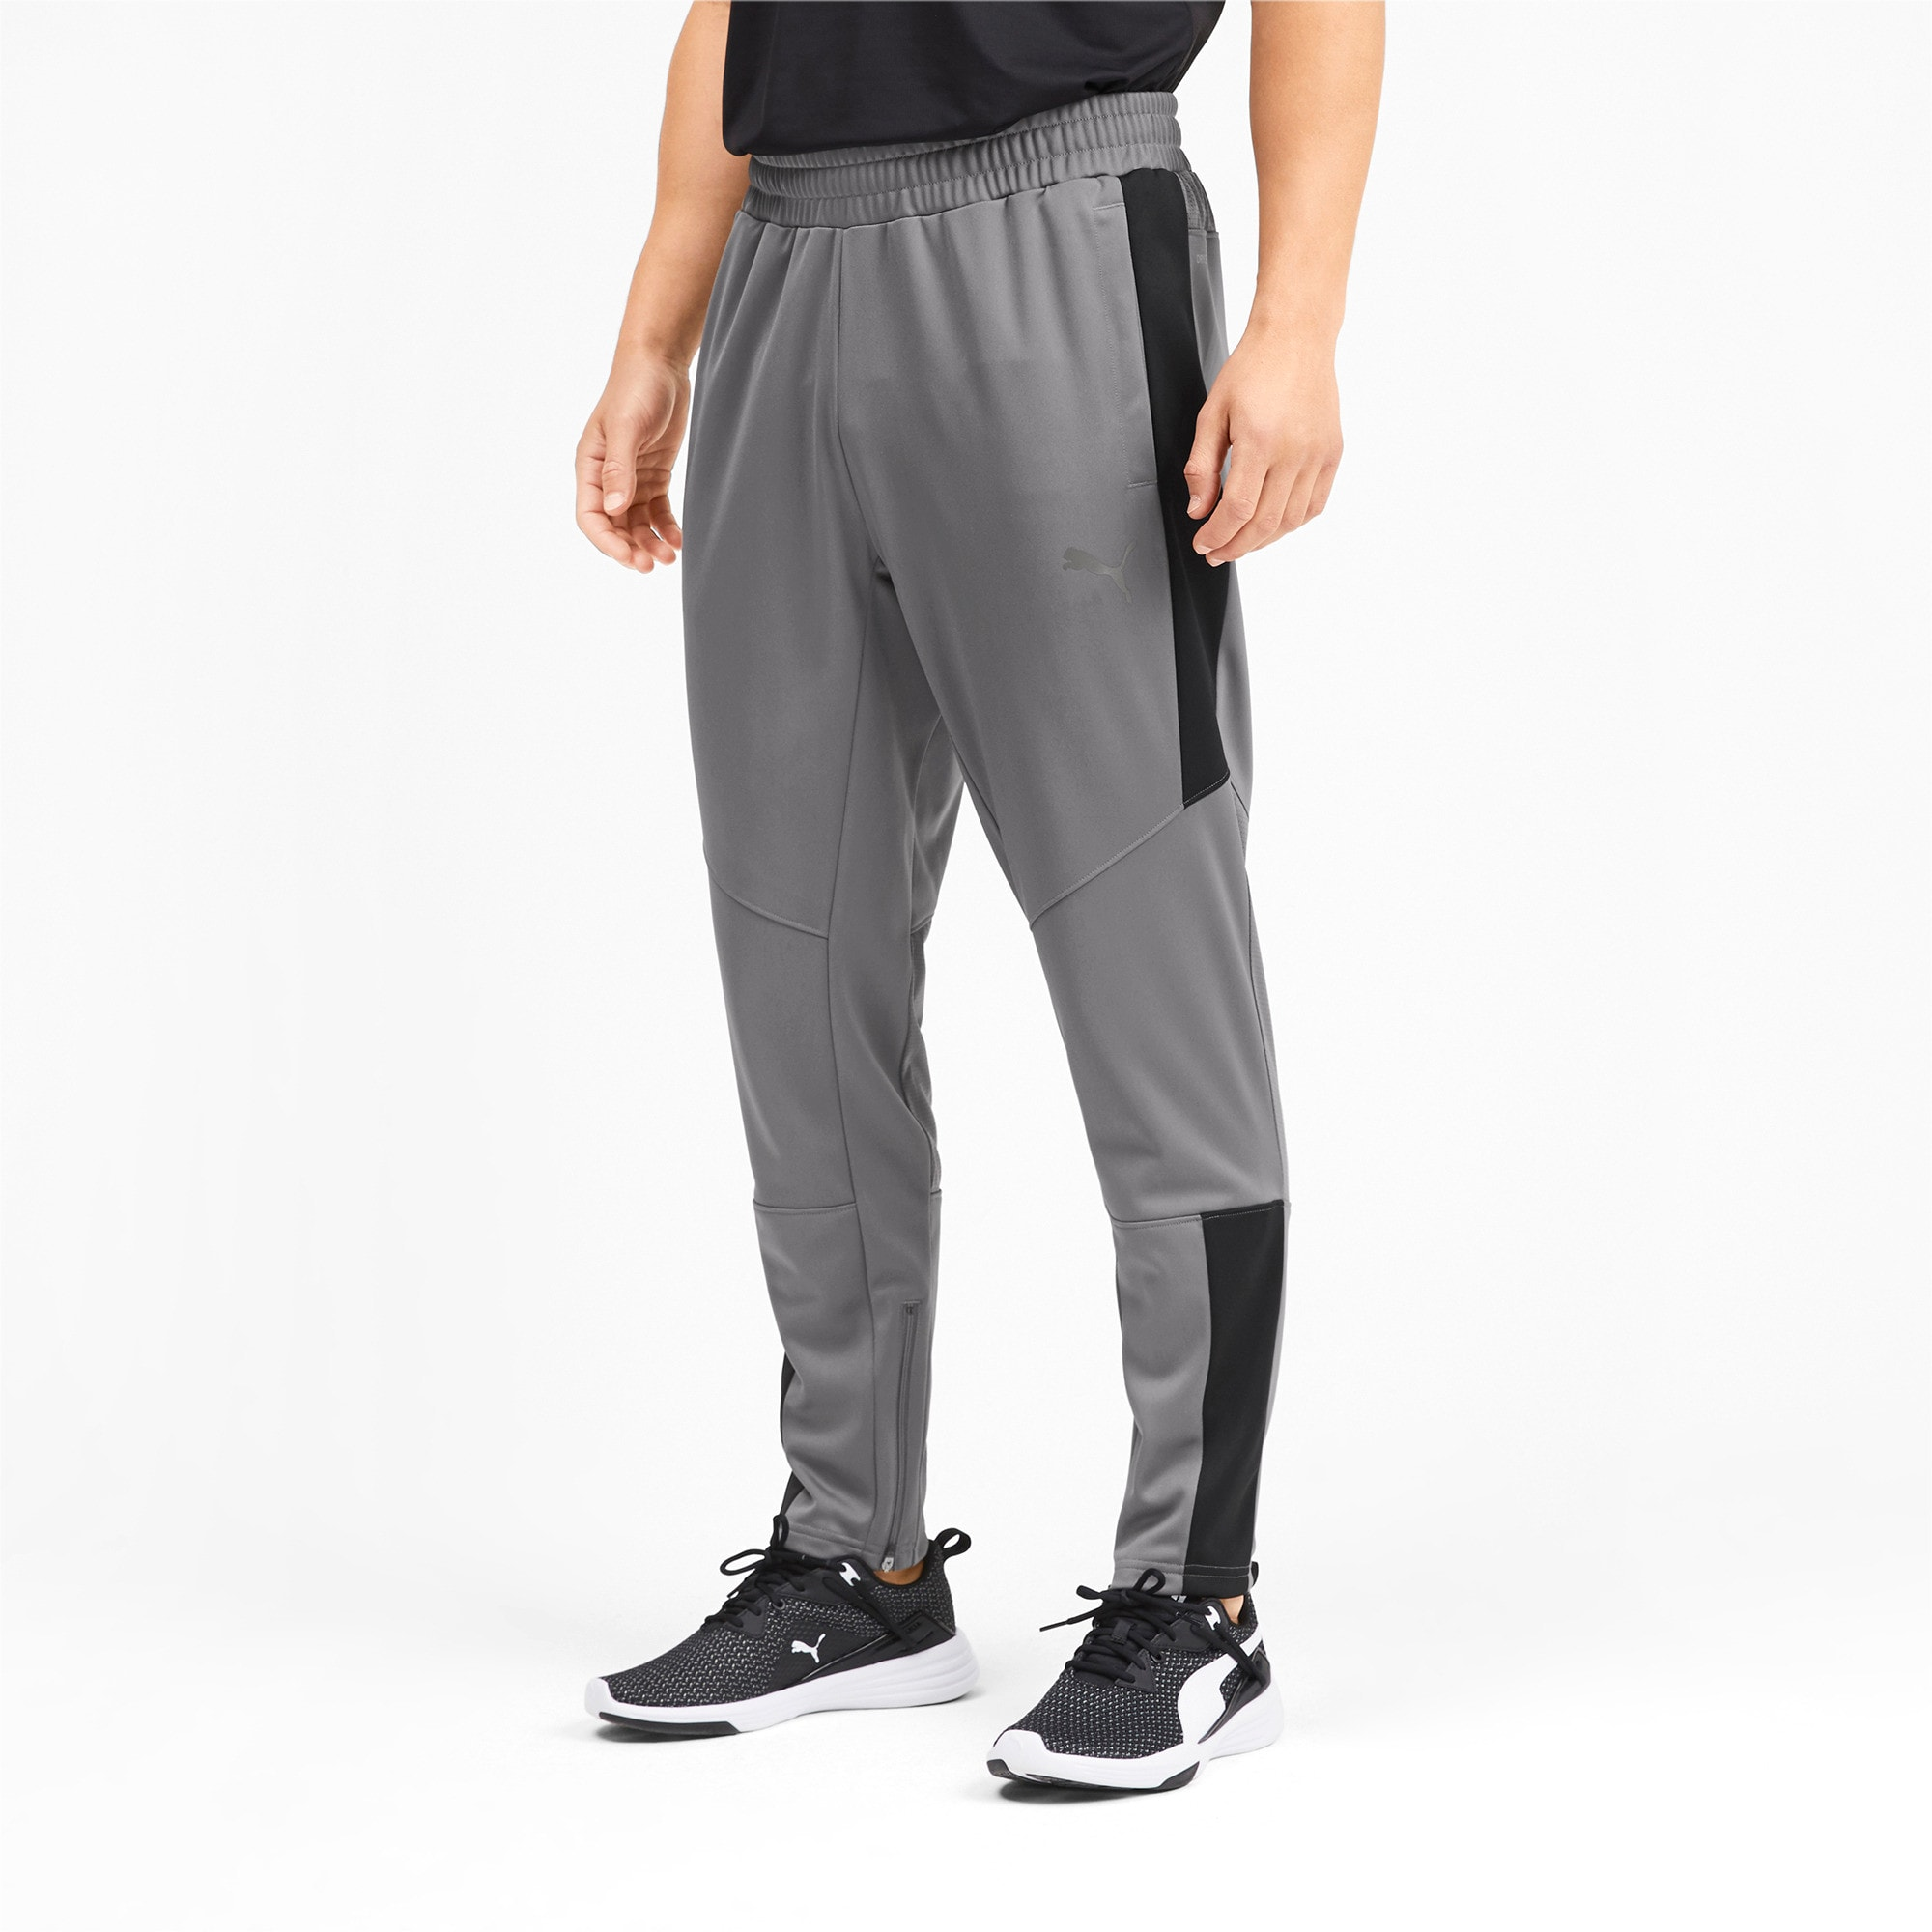 Thumbnail 2 of PUMA Blaster Men's Pants, CASTLEROCK-Puma Black, medium